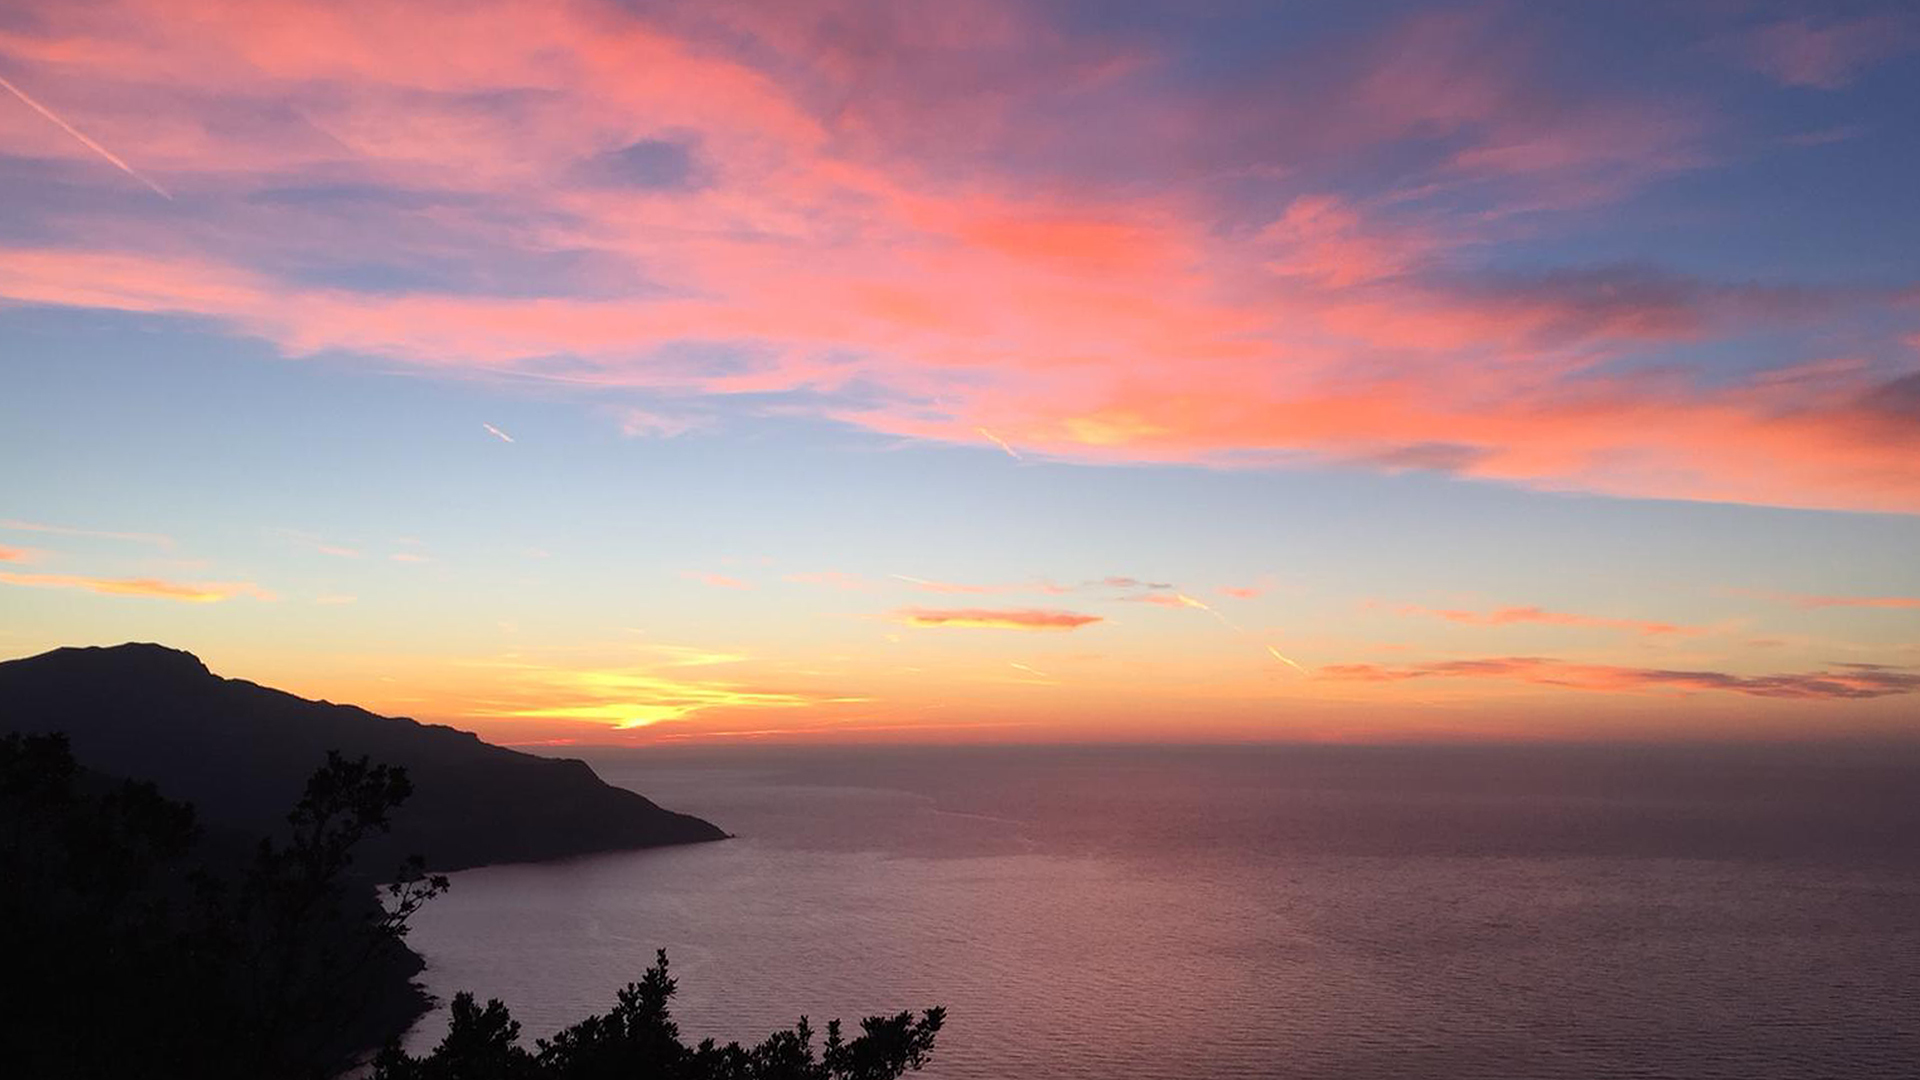 Pink sunset sea mountains view